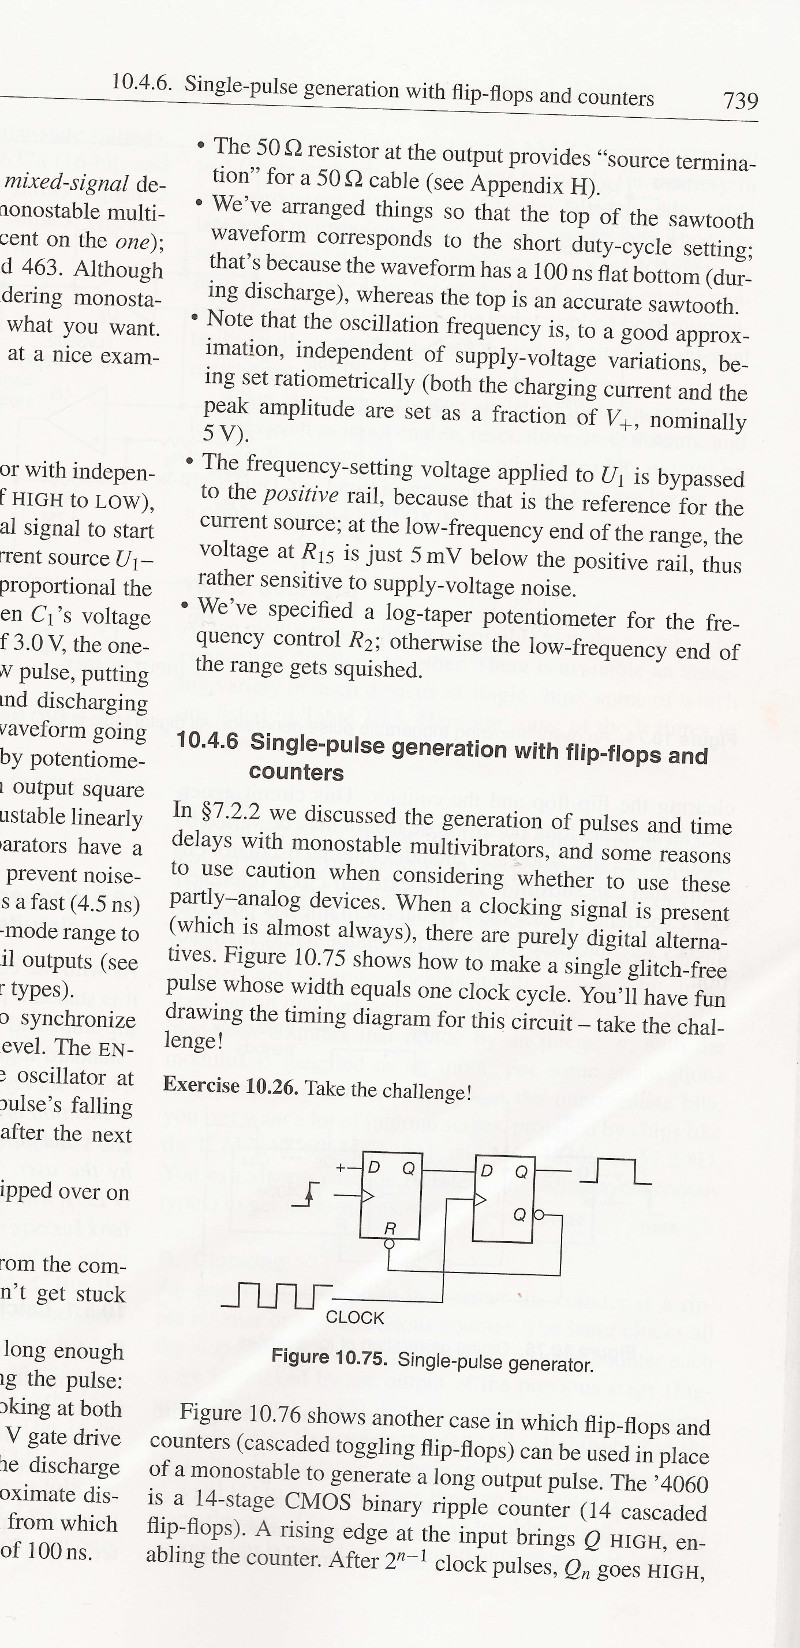 Page 739 of  The Art of Electronics Third Edition